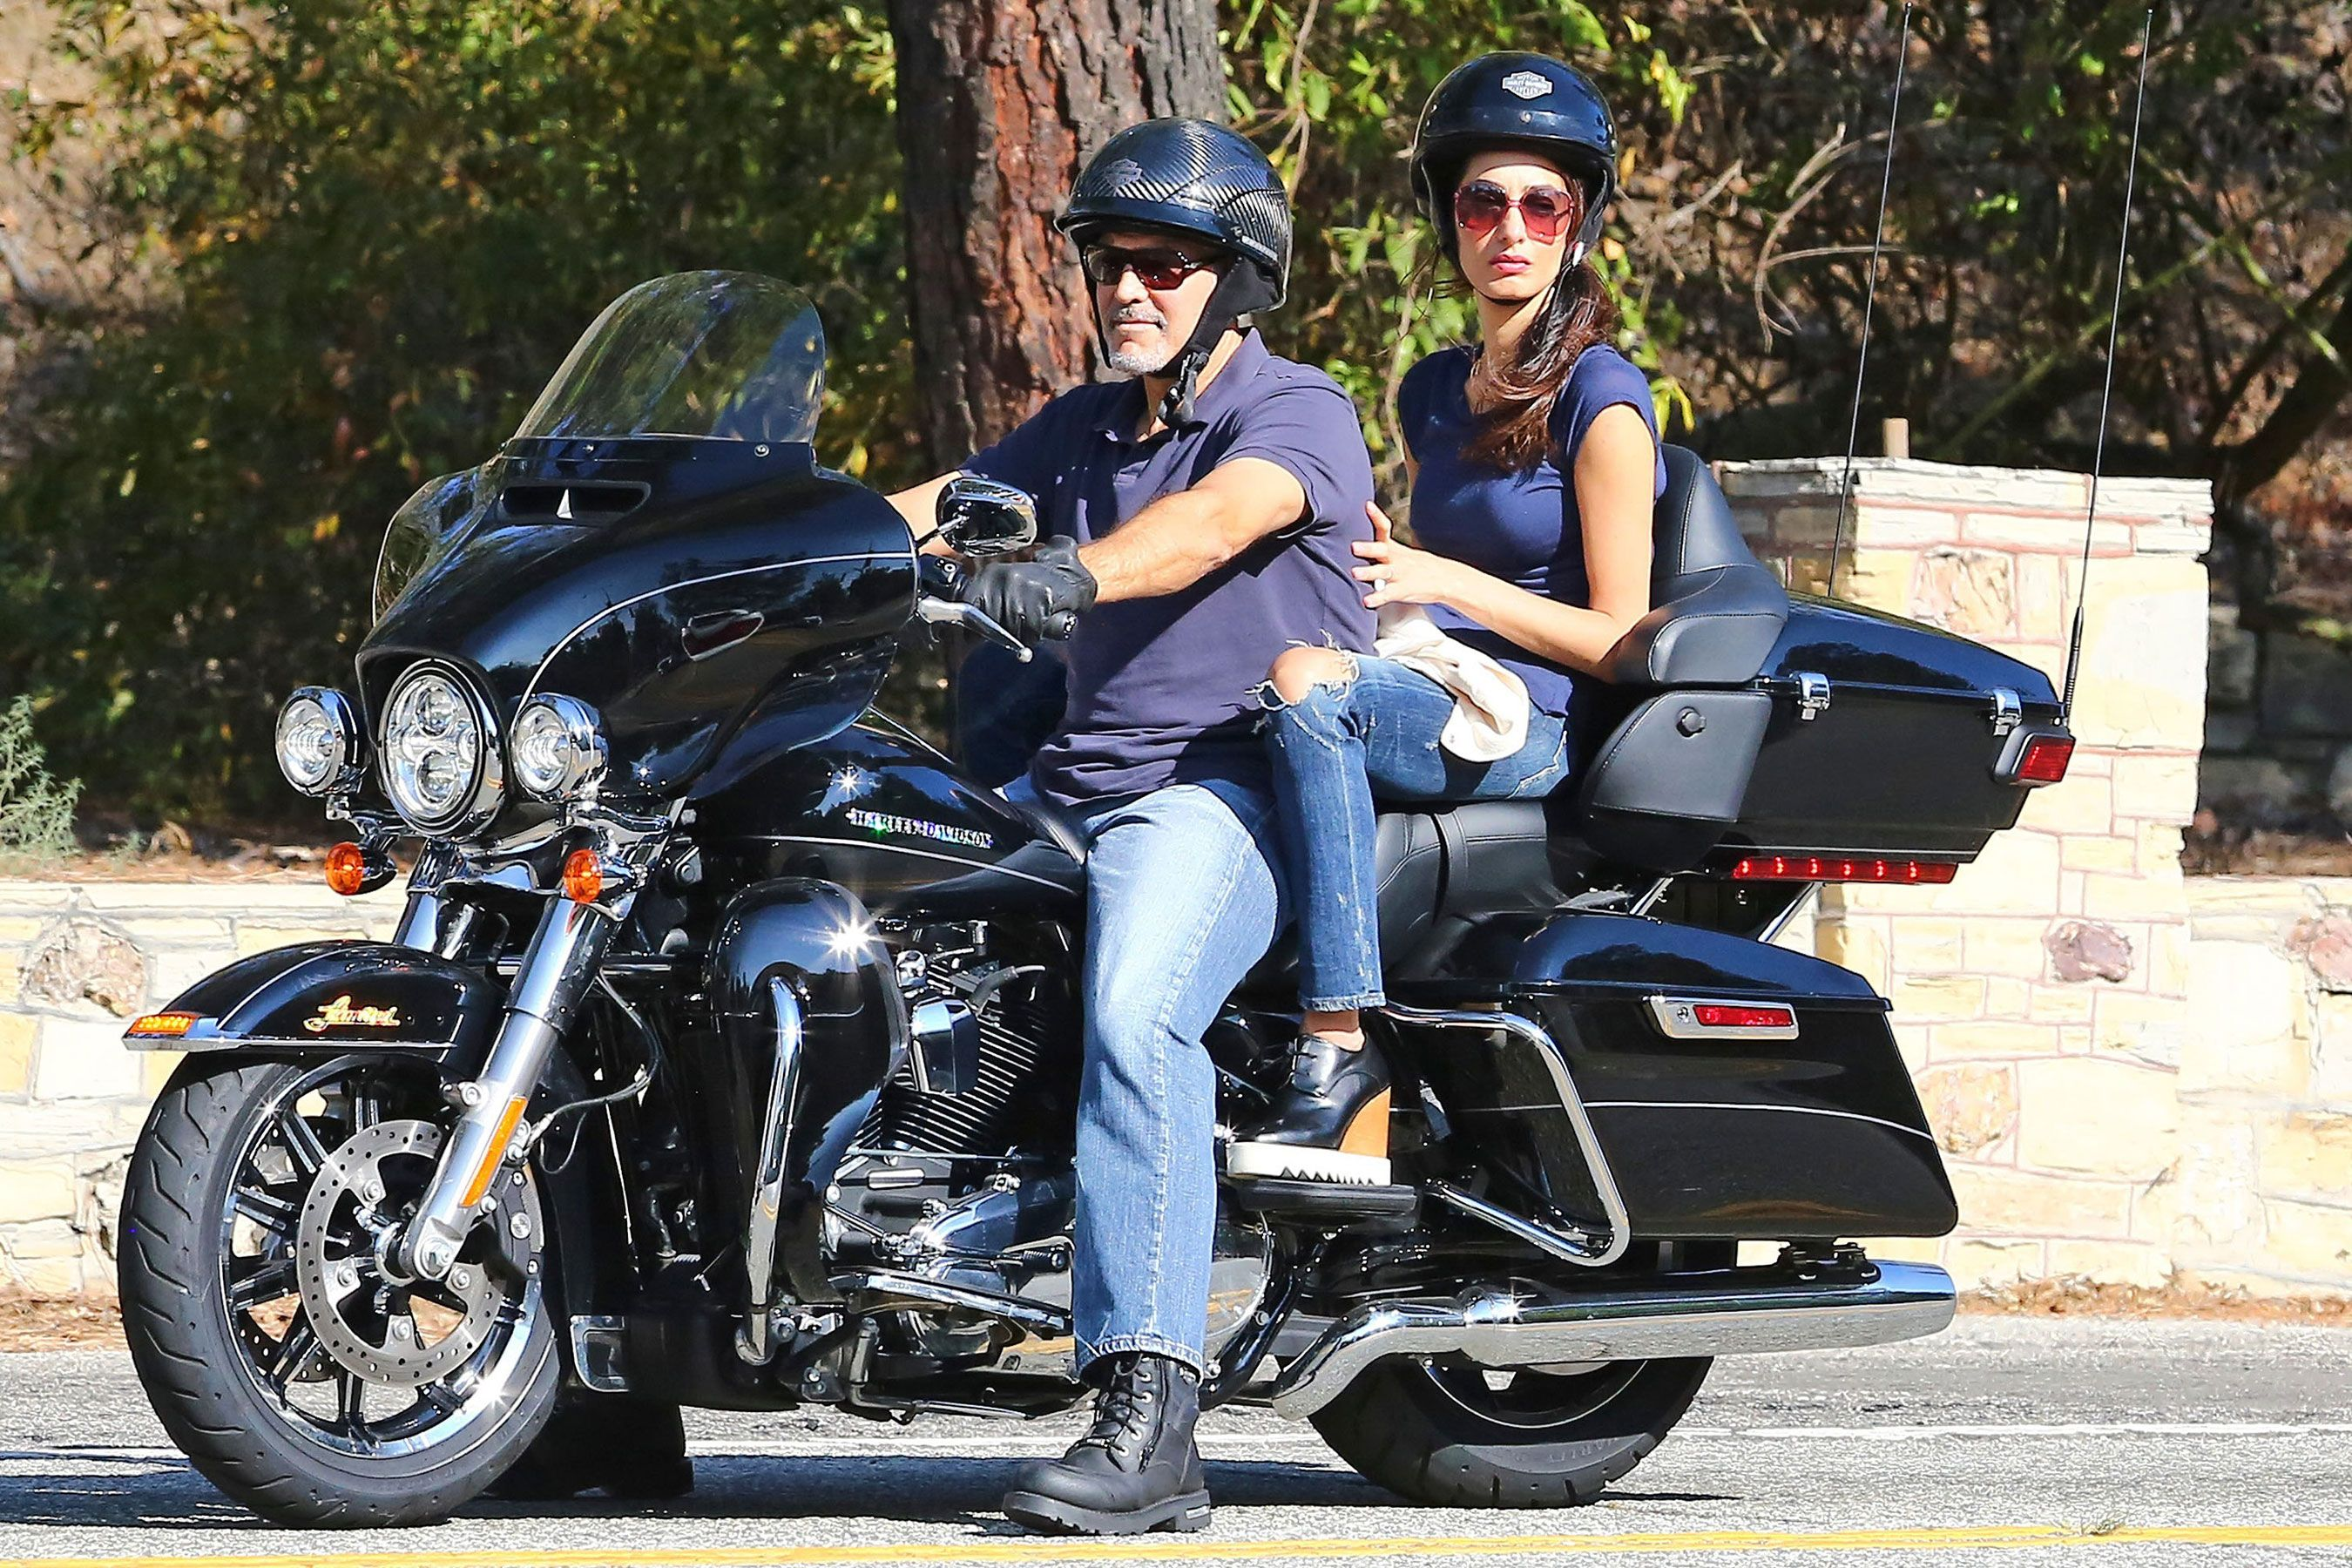 George Clooney Auctions Off Motorcycle After Scary Accident Hes 2700x1800